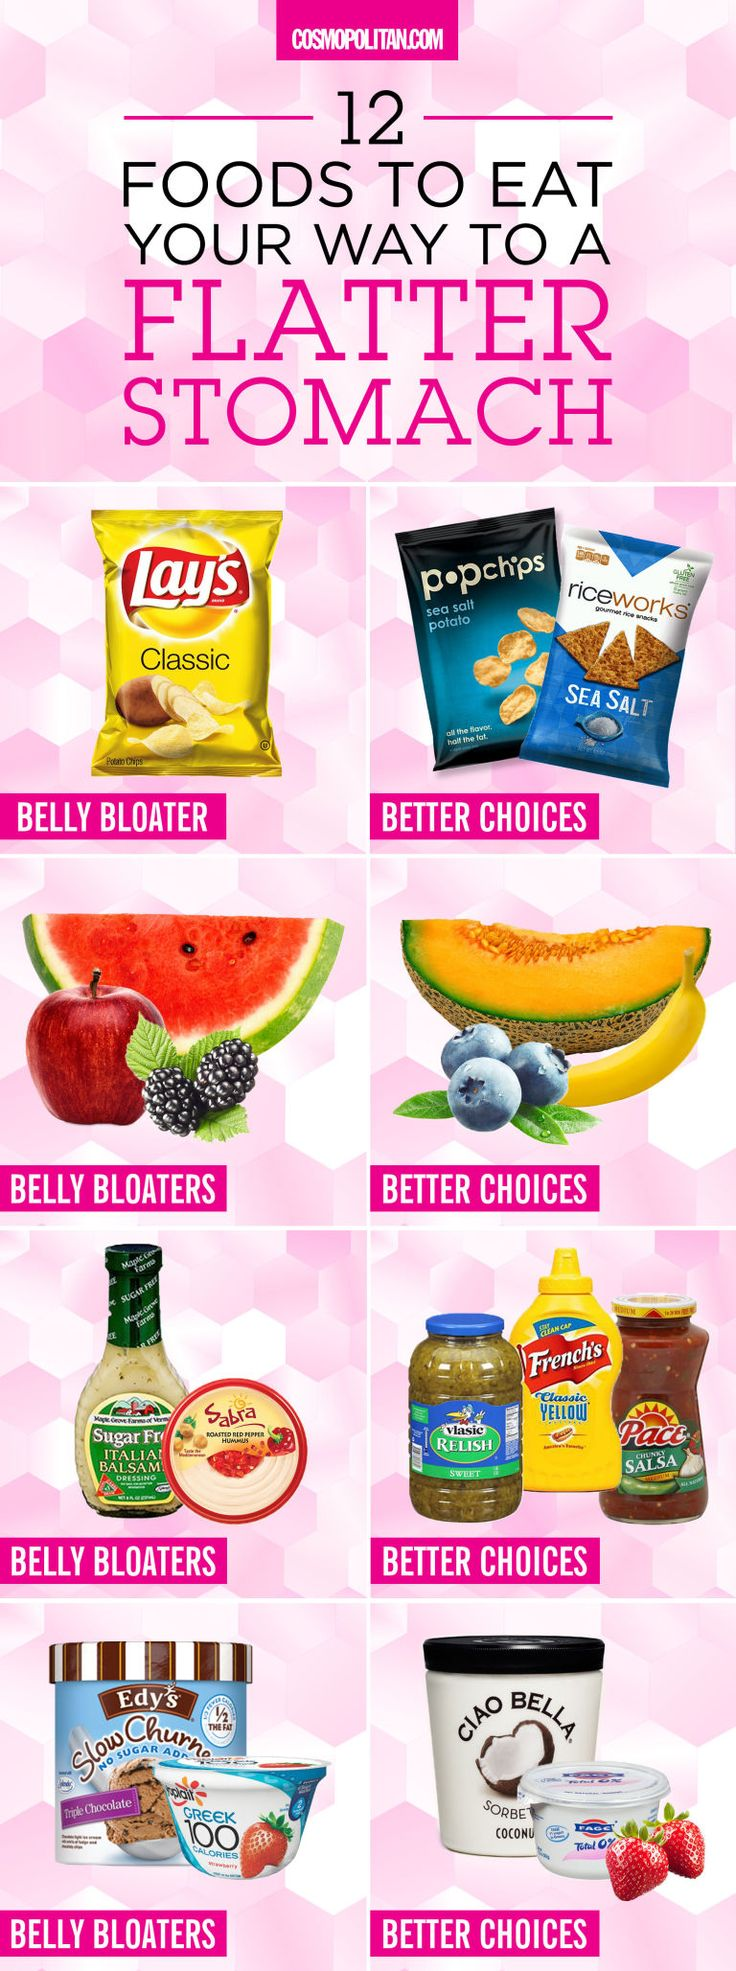 7 Hero Foods for a Flatter Stomach, According to Nutritionists